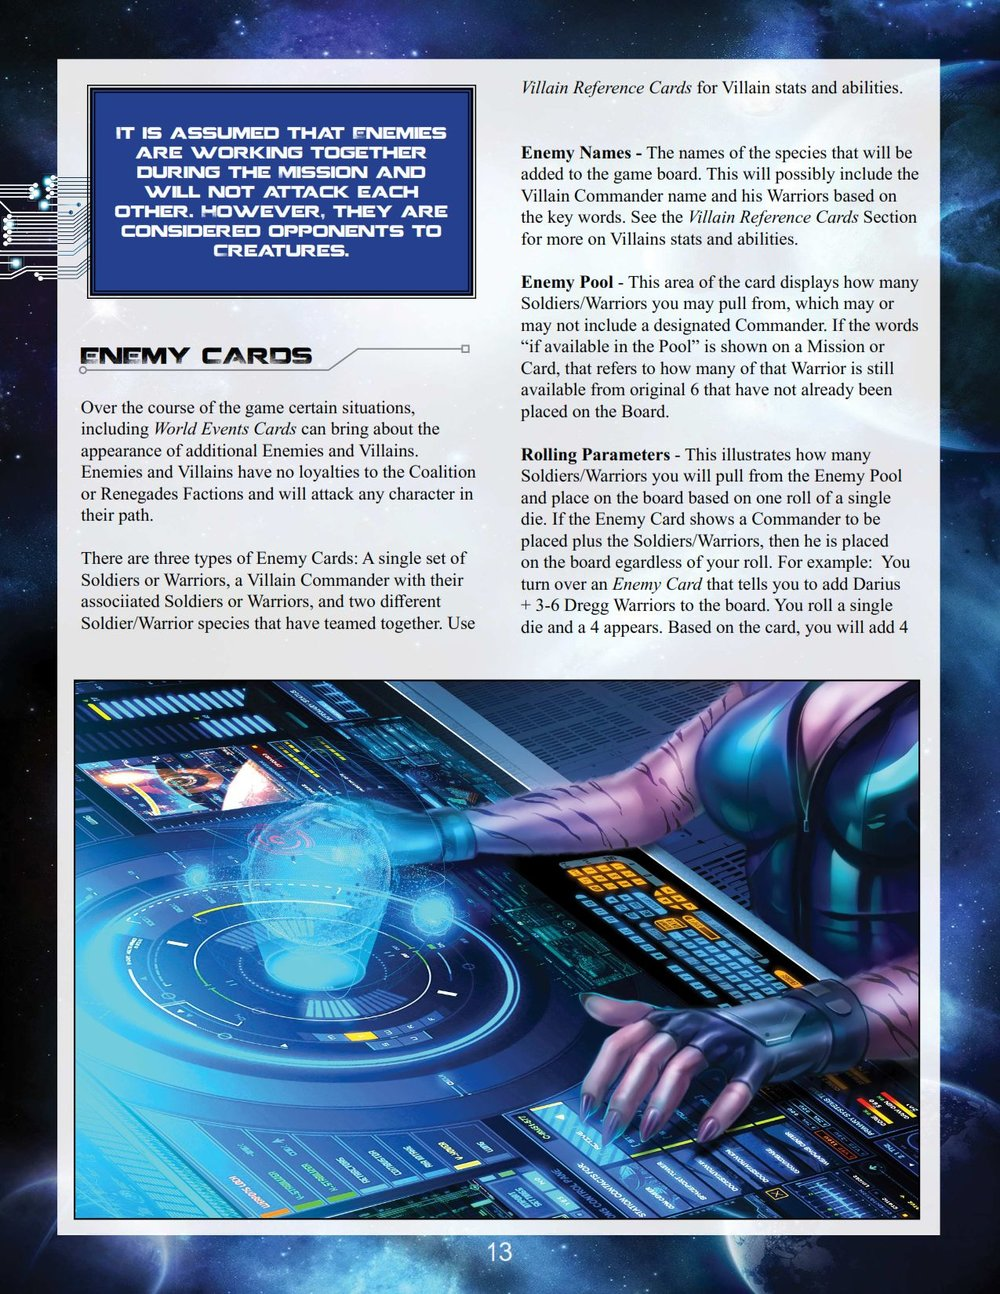 Renegades_Rule_Book_014.jpg